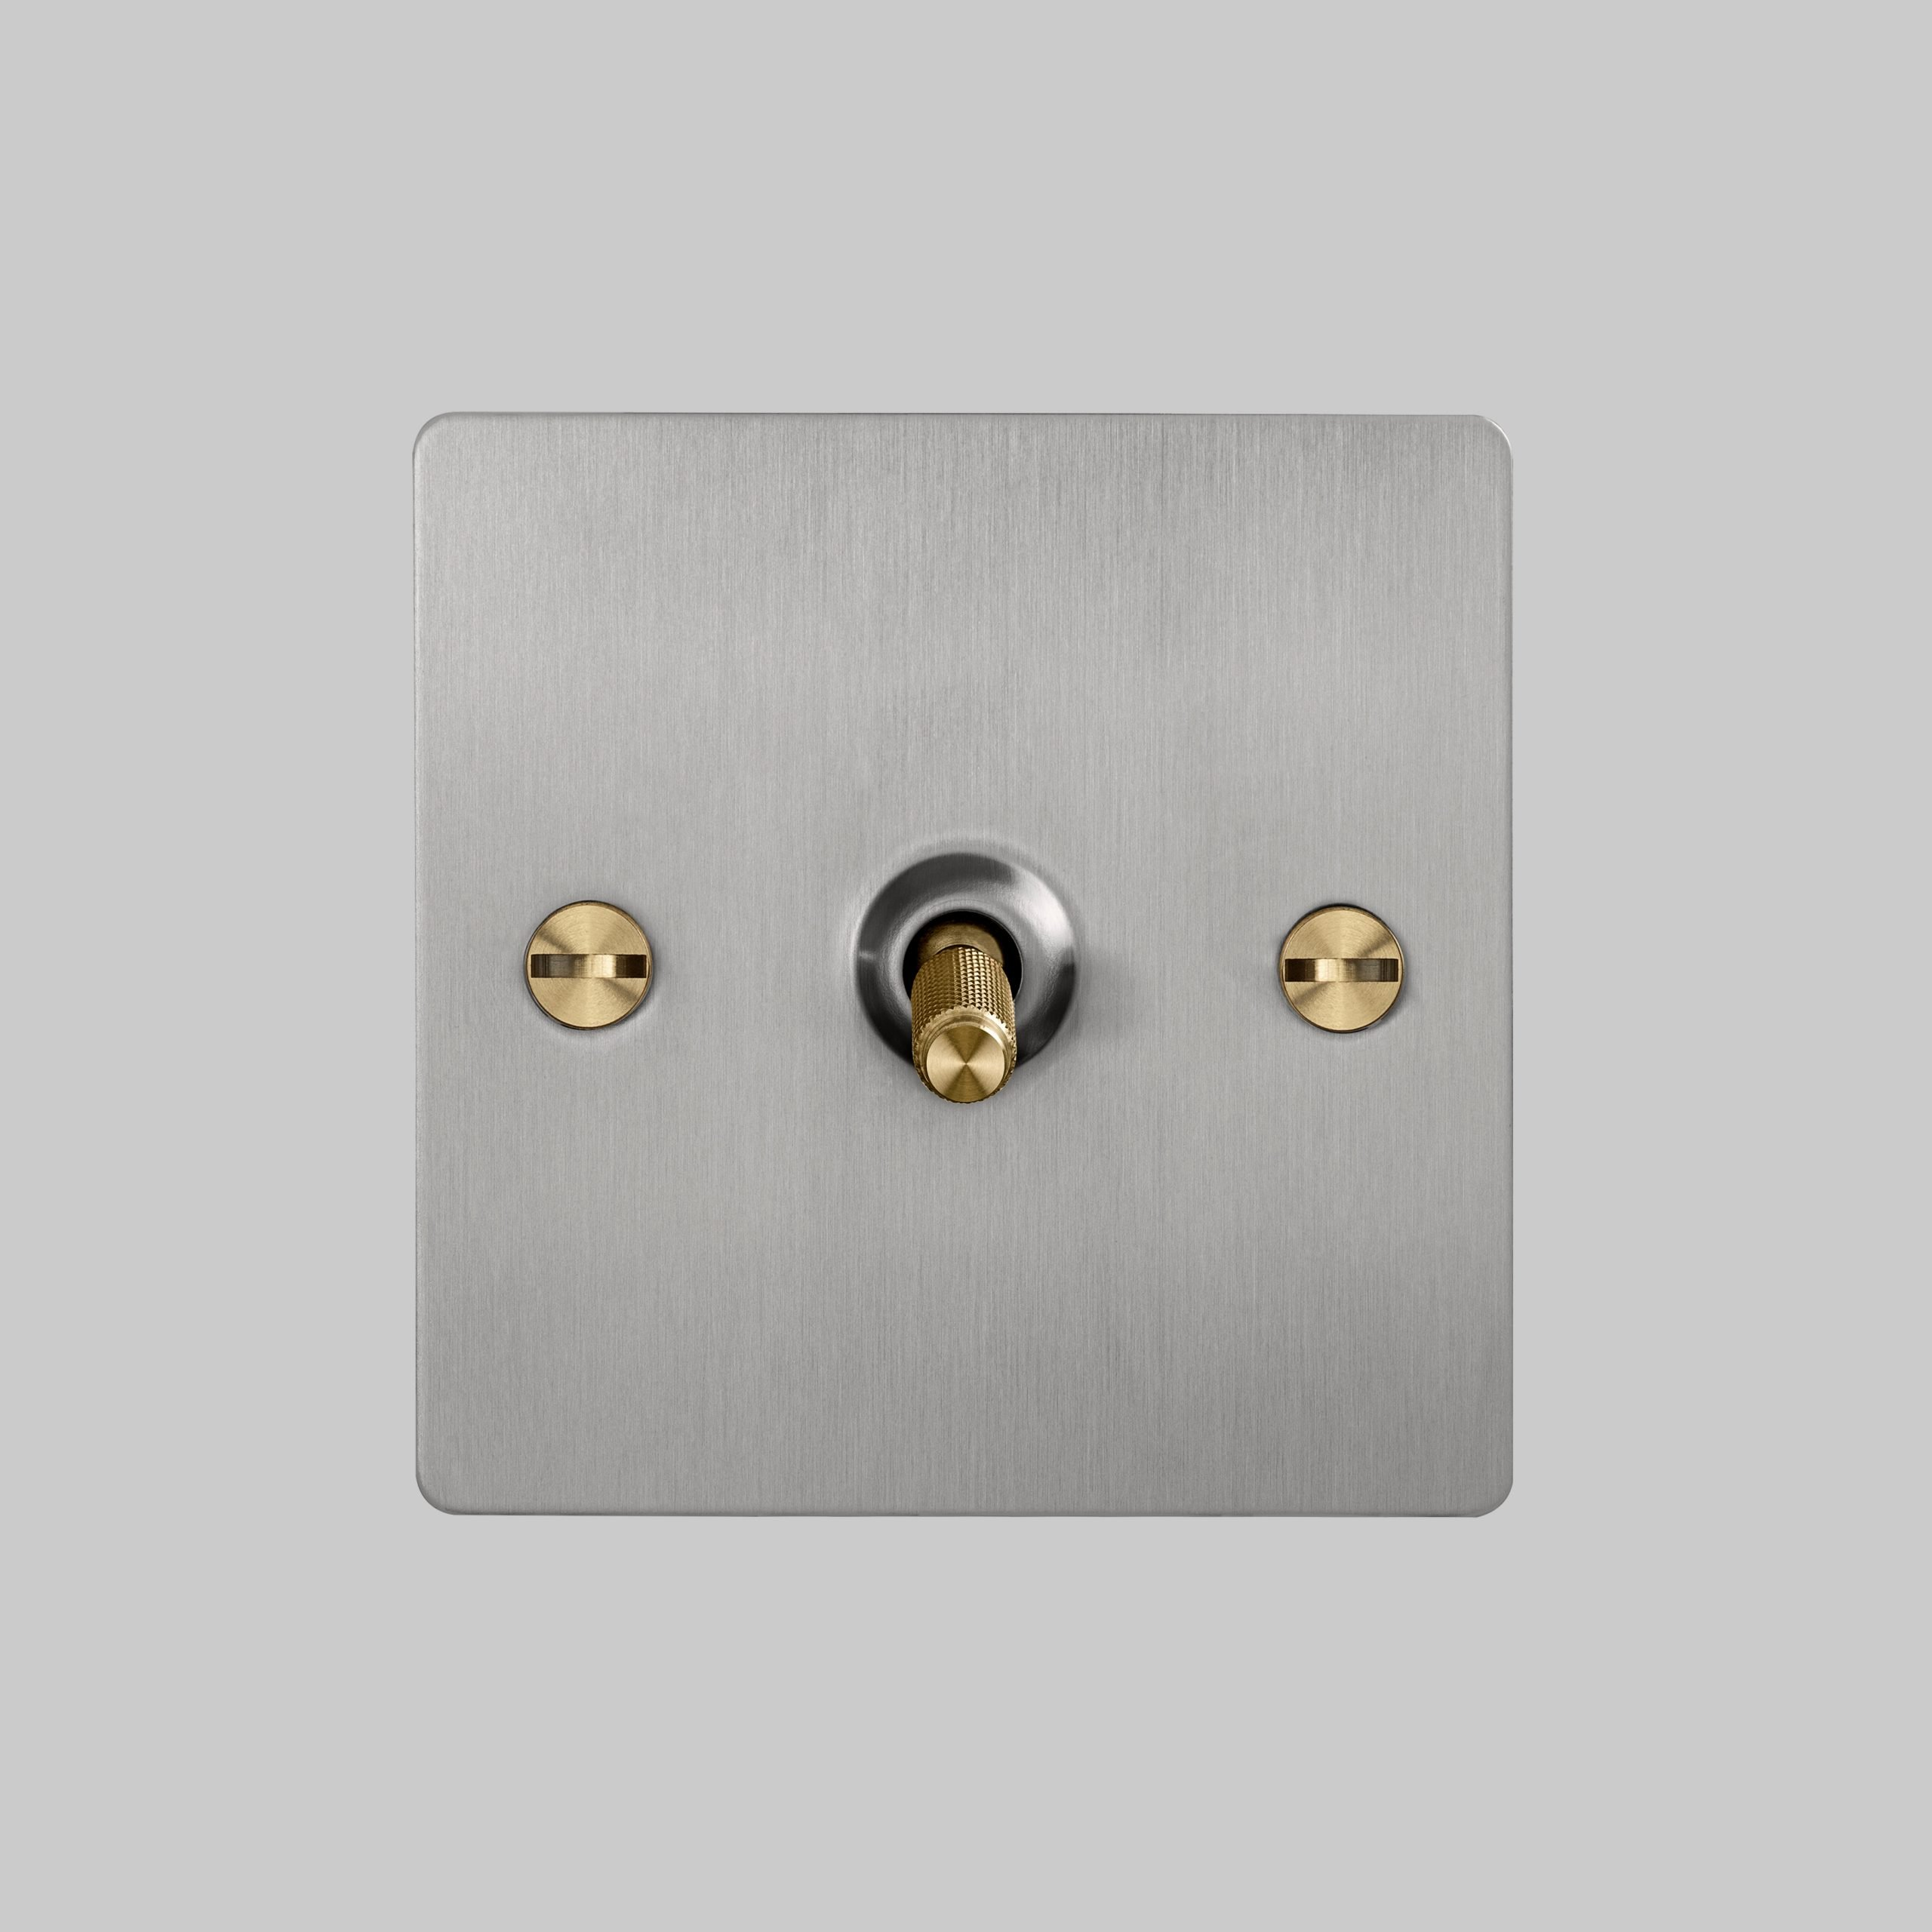 2. 1G_Toggle_Front_Steel_Brass